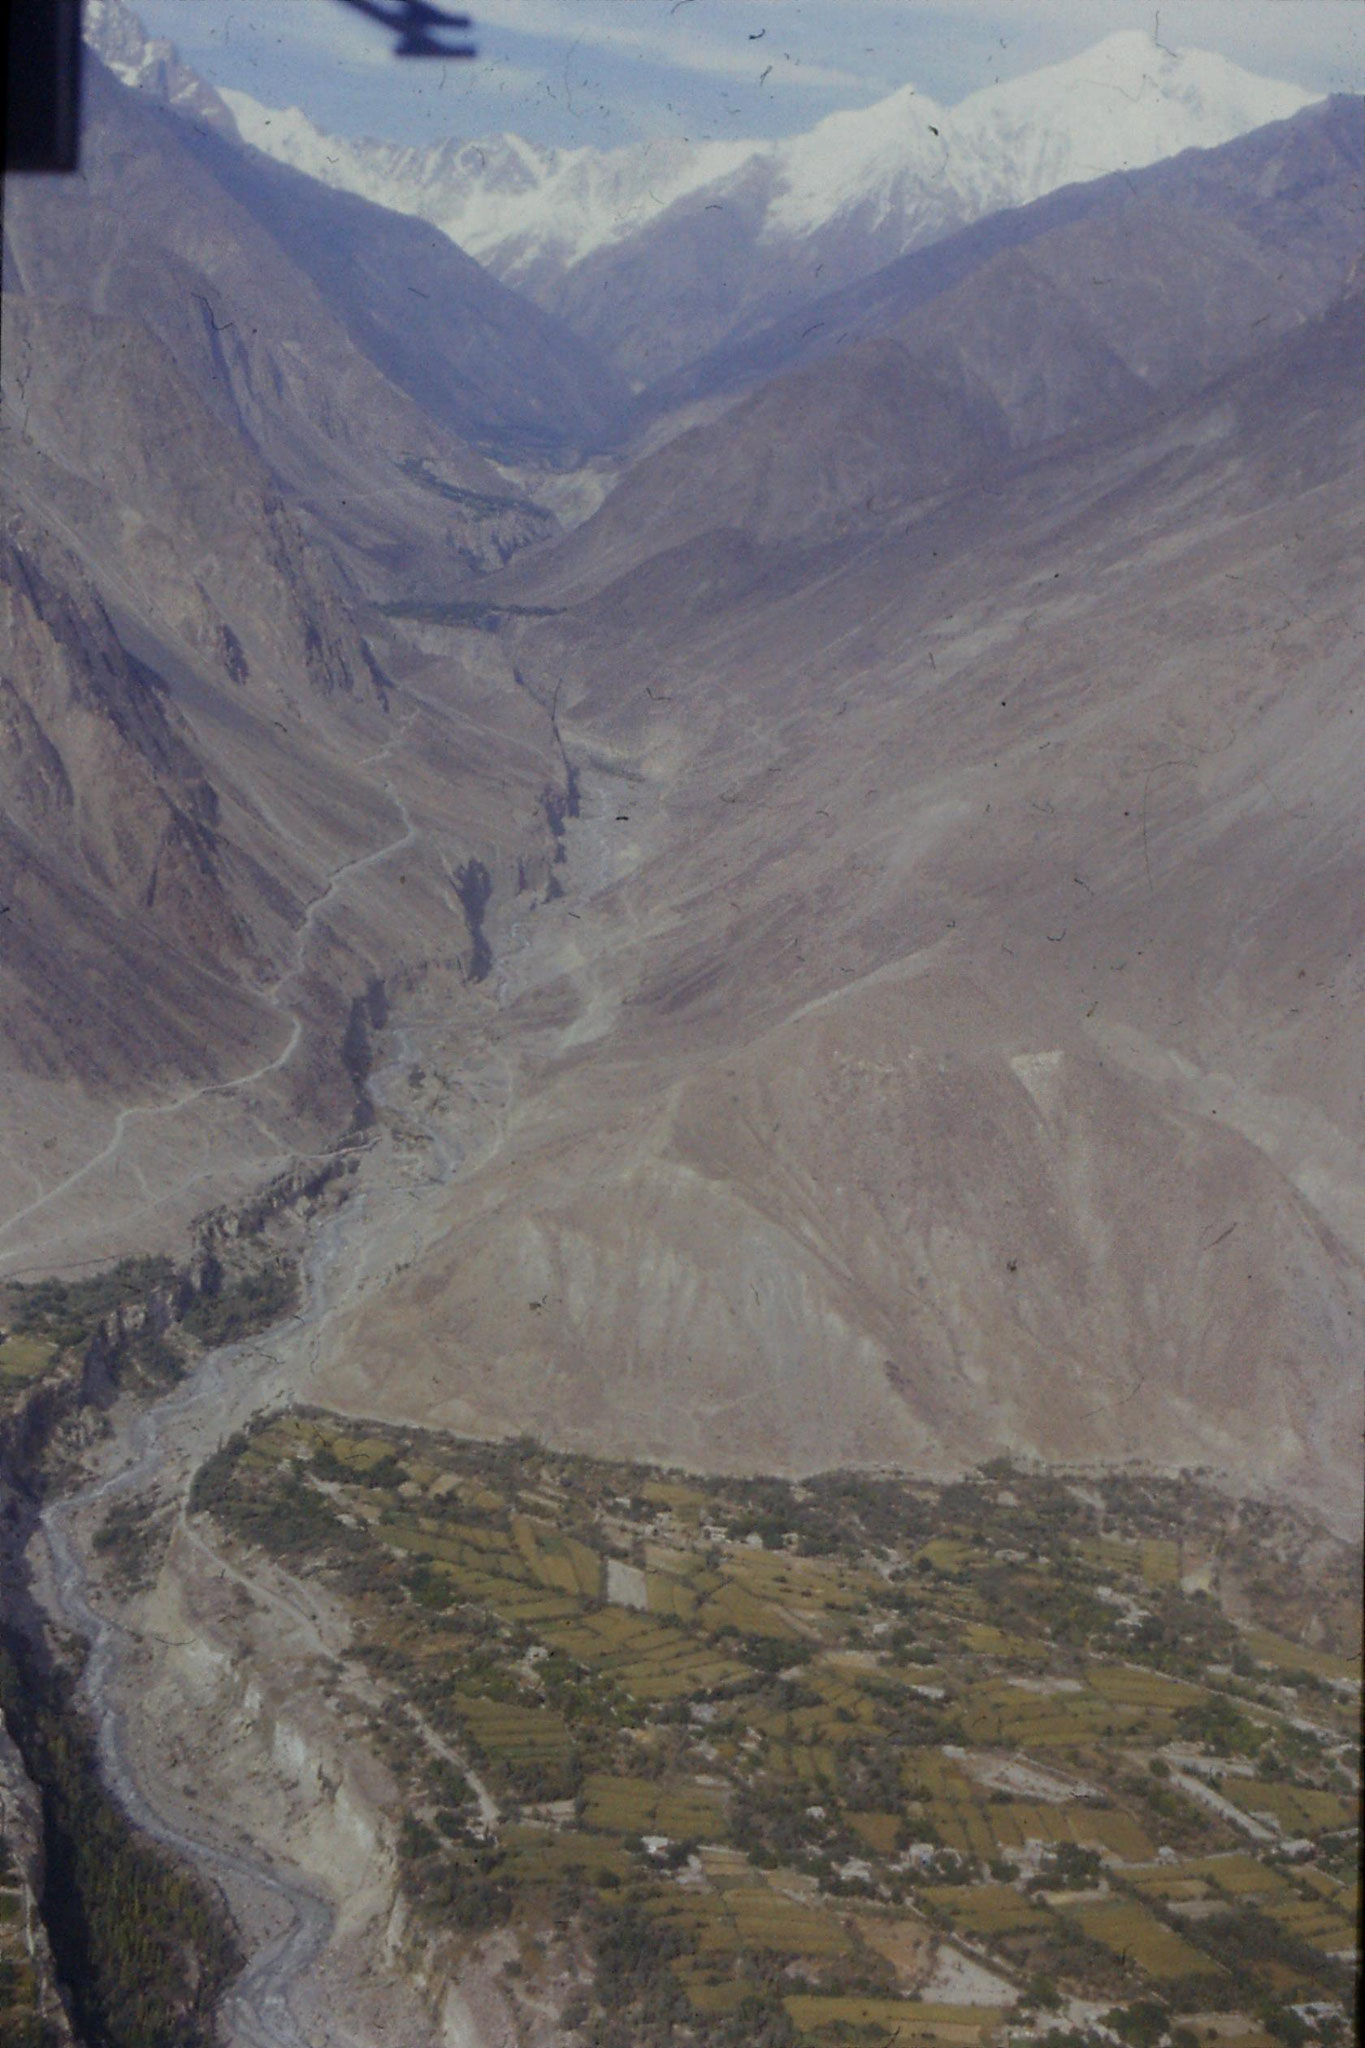 22/10/1989: 23: view of Hunza valley